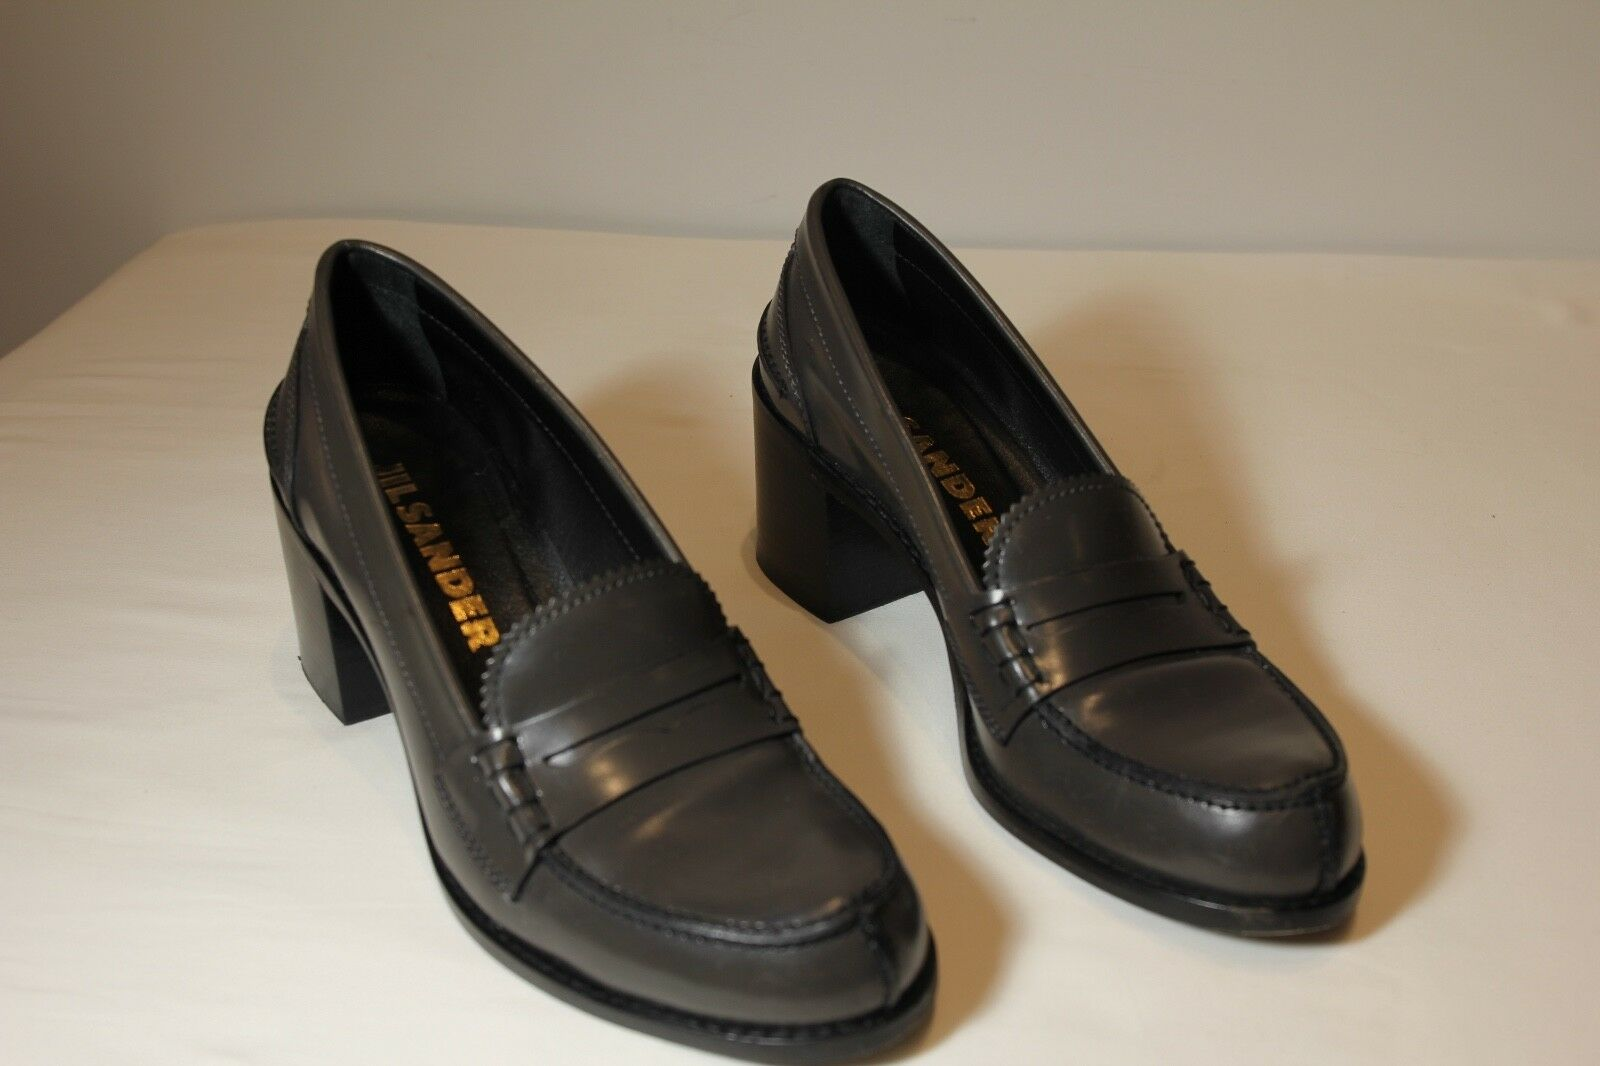 AUTHENTIC Jill Sander Grigio Loafers 36.5 with 2-Inch Heels Size 36.5 Loafers 2015e6